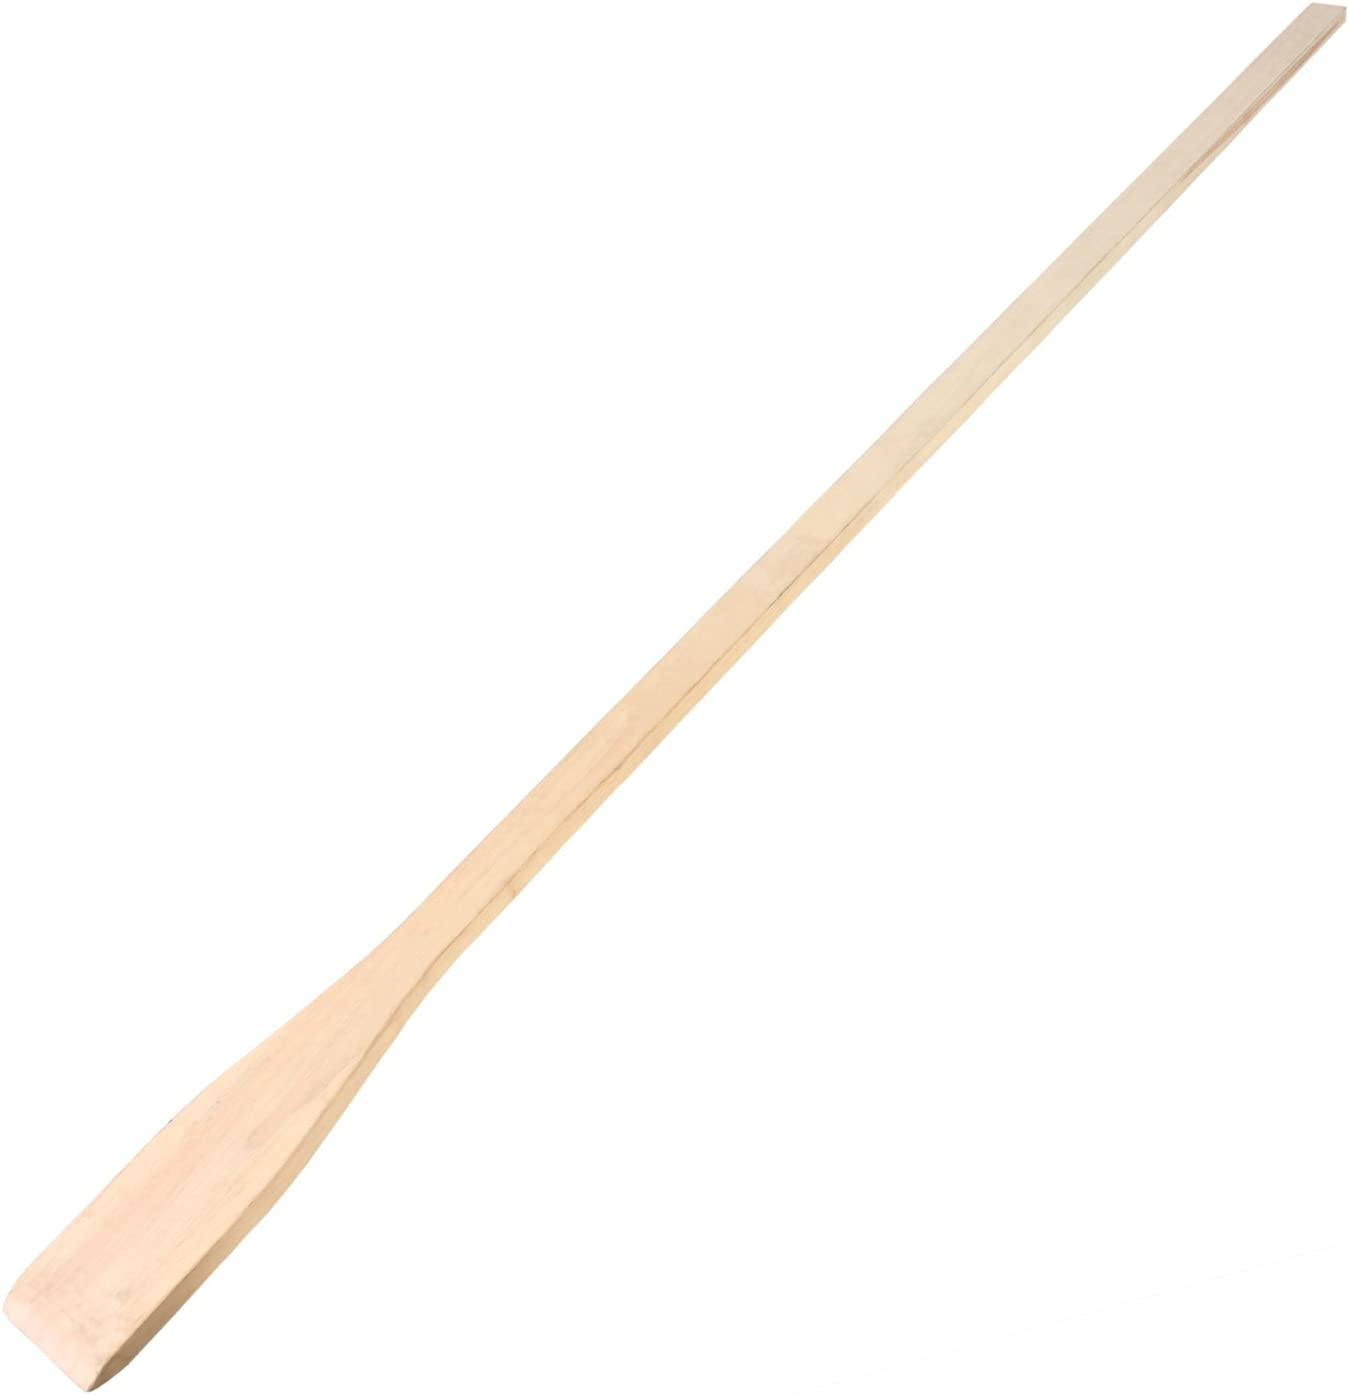 Excellante 60-Inch Wood Mixing Paddles